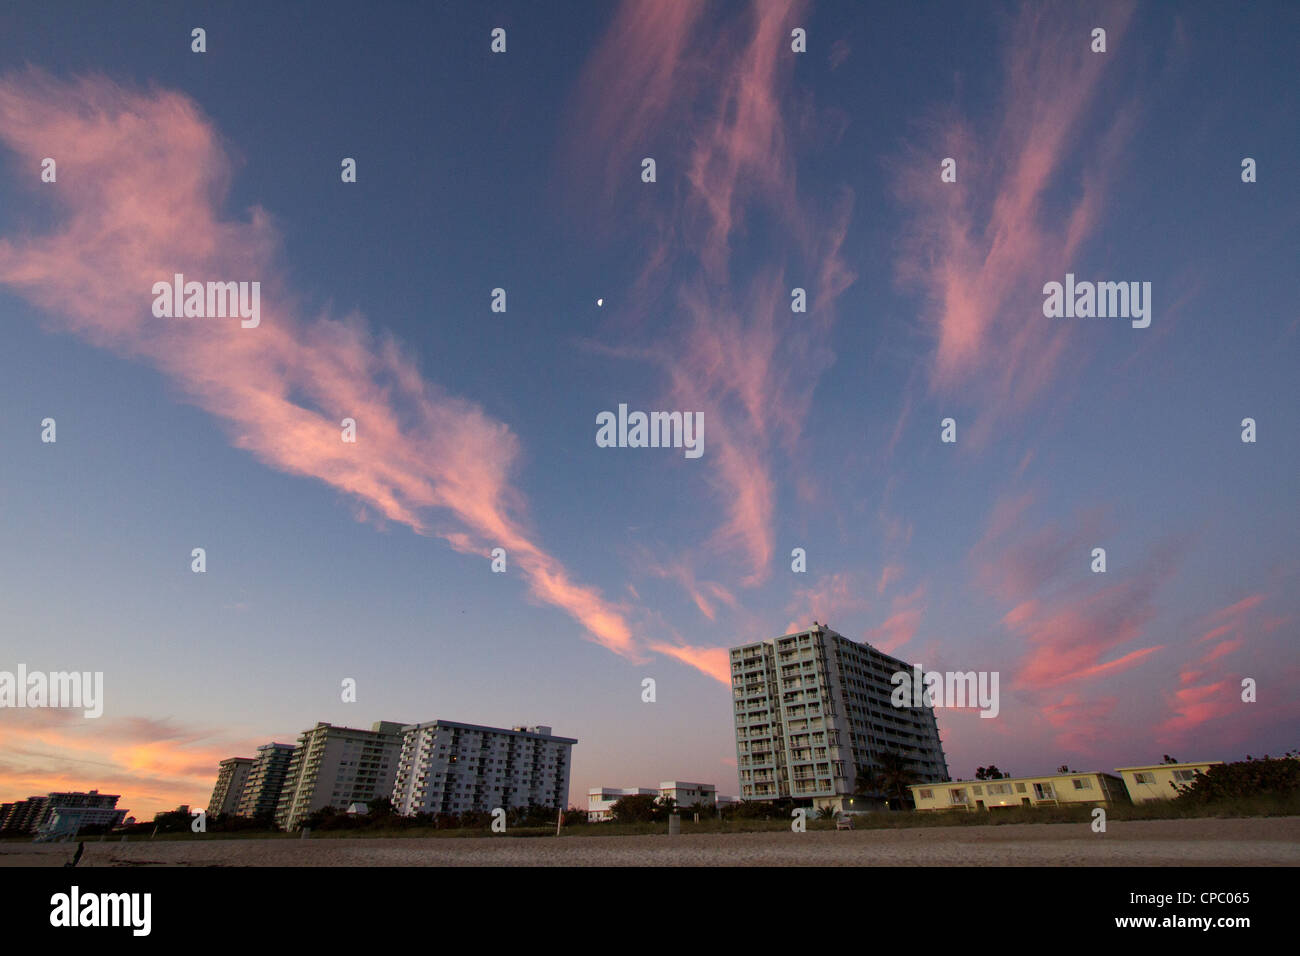 Wispy Red Clouds During Miami Sunrise - Stock Image